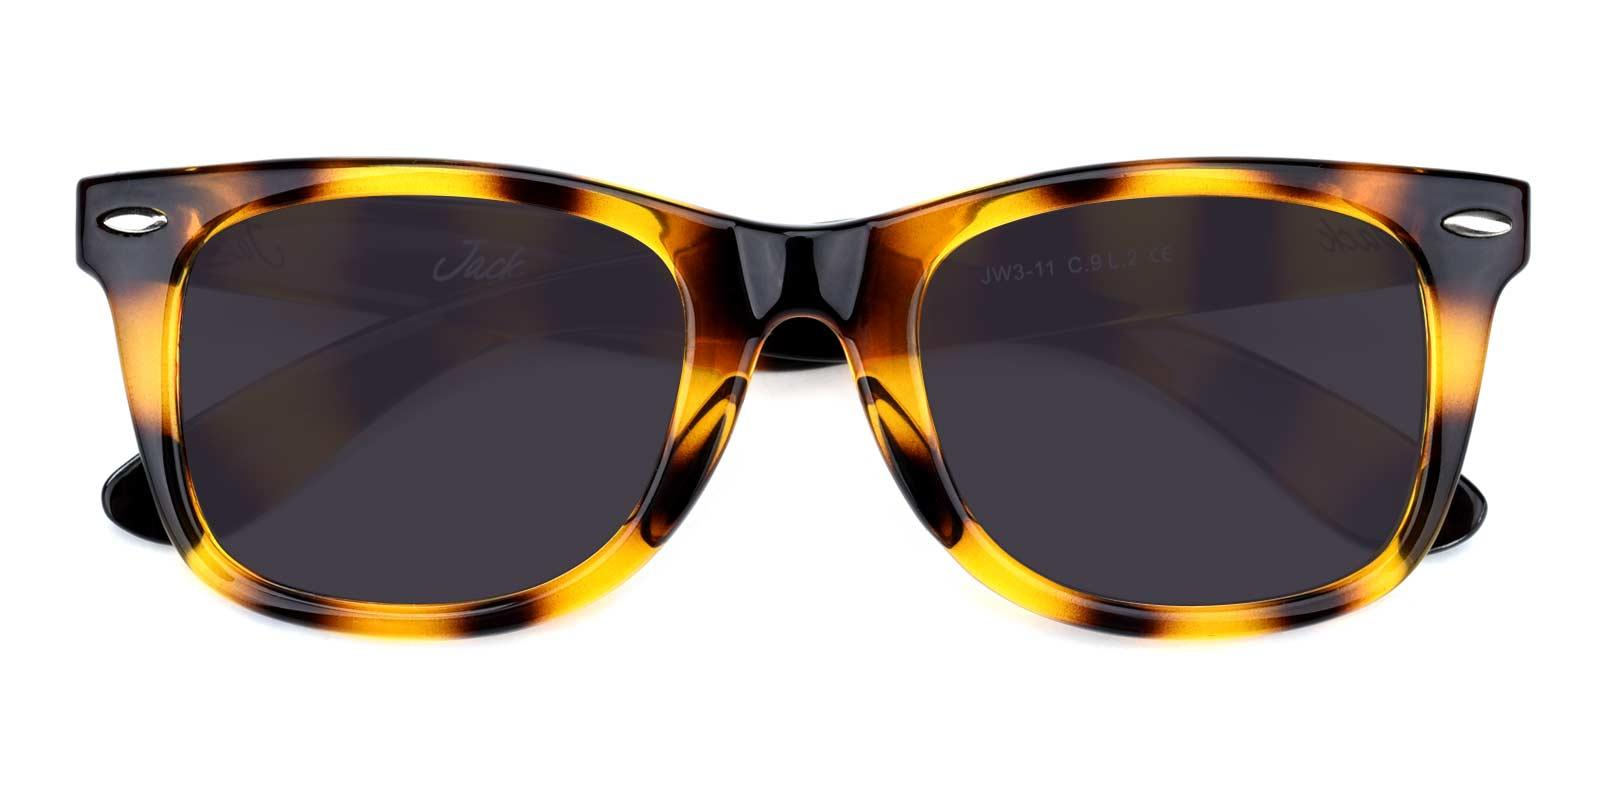 Honeybee-Tortoise-Square-TR-Sunglasses-detail